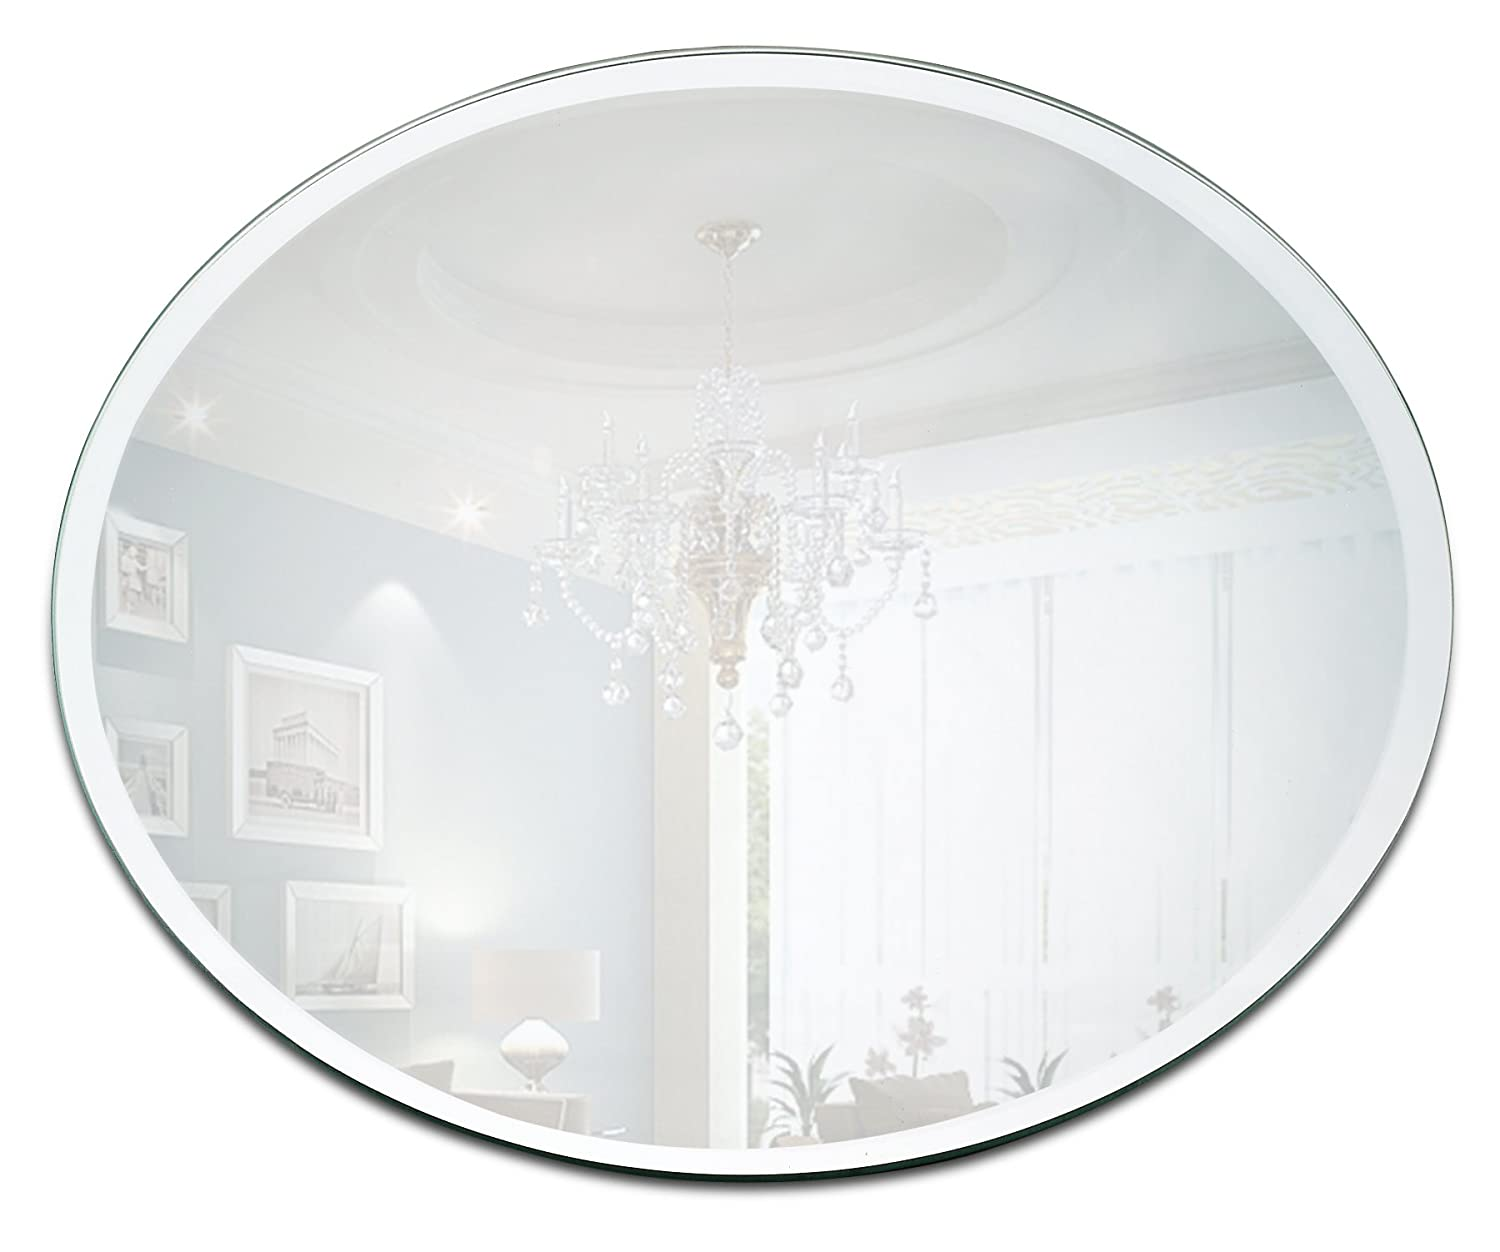 Round Mirror Candle Plate Set - Box of 12 Mirror Trays - 10 inch Diameter with Beveled Edge - Round Mirror for Centerpieces, Wall Décor, Crafts Wall Décor Light In The Dark COMINHKPR94046